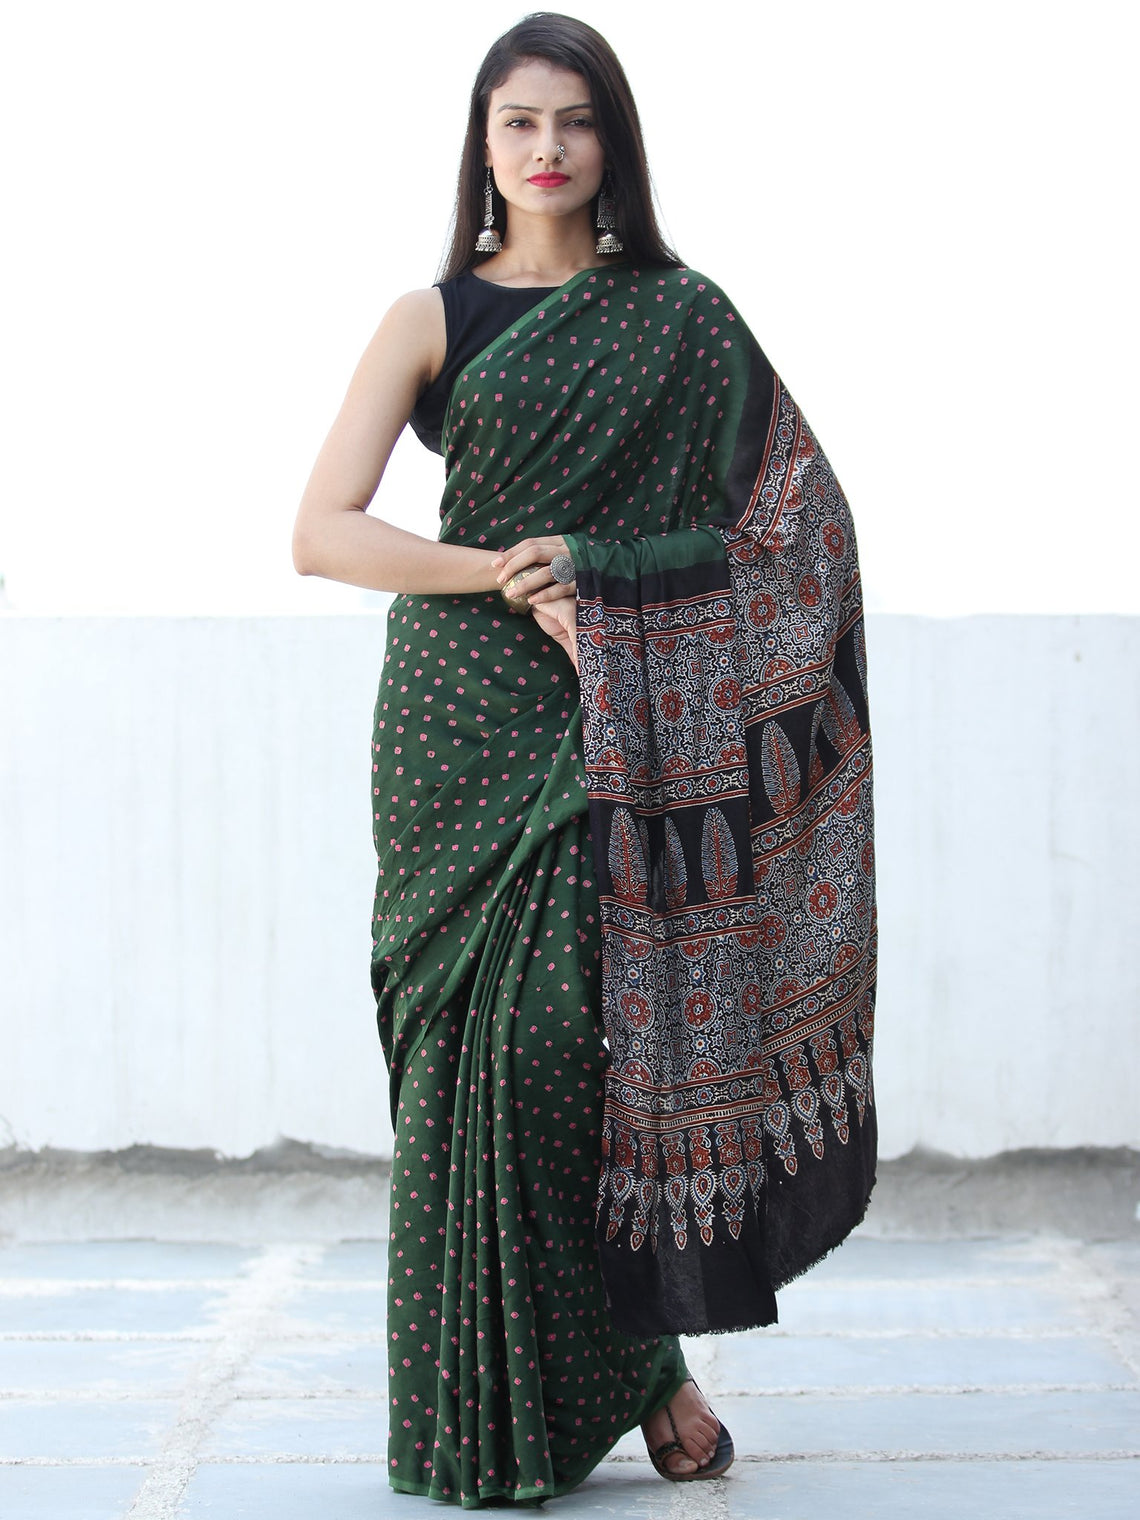 Bottle Green Coral Black  Bandhej Modal Silk Saree With Ajrakh Printed Pallu & Blouse - S031703882